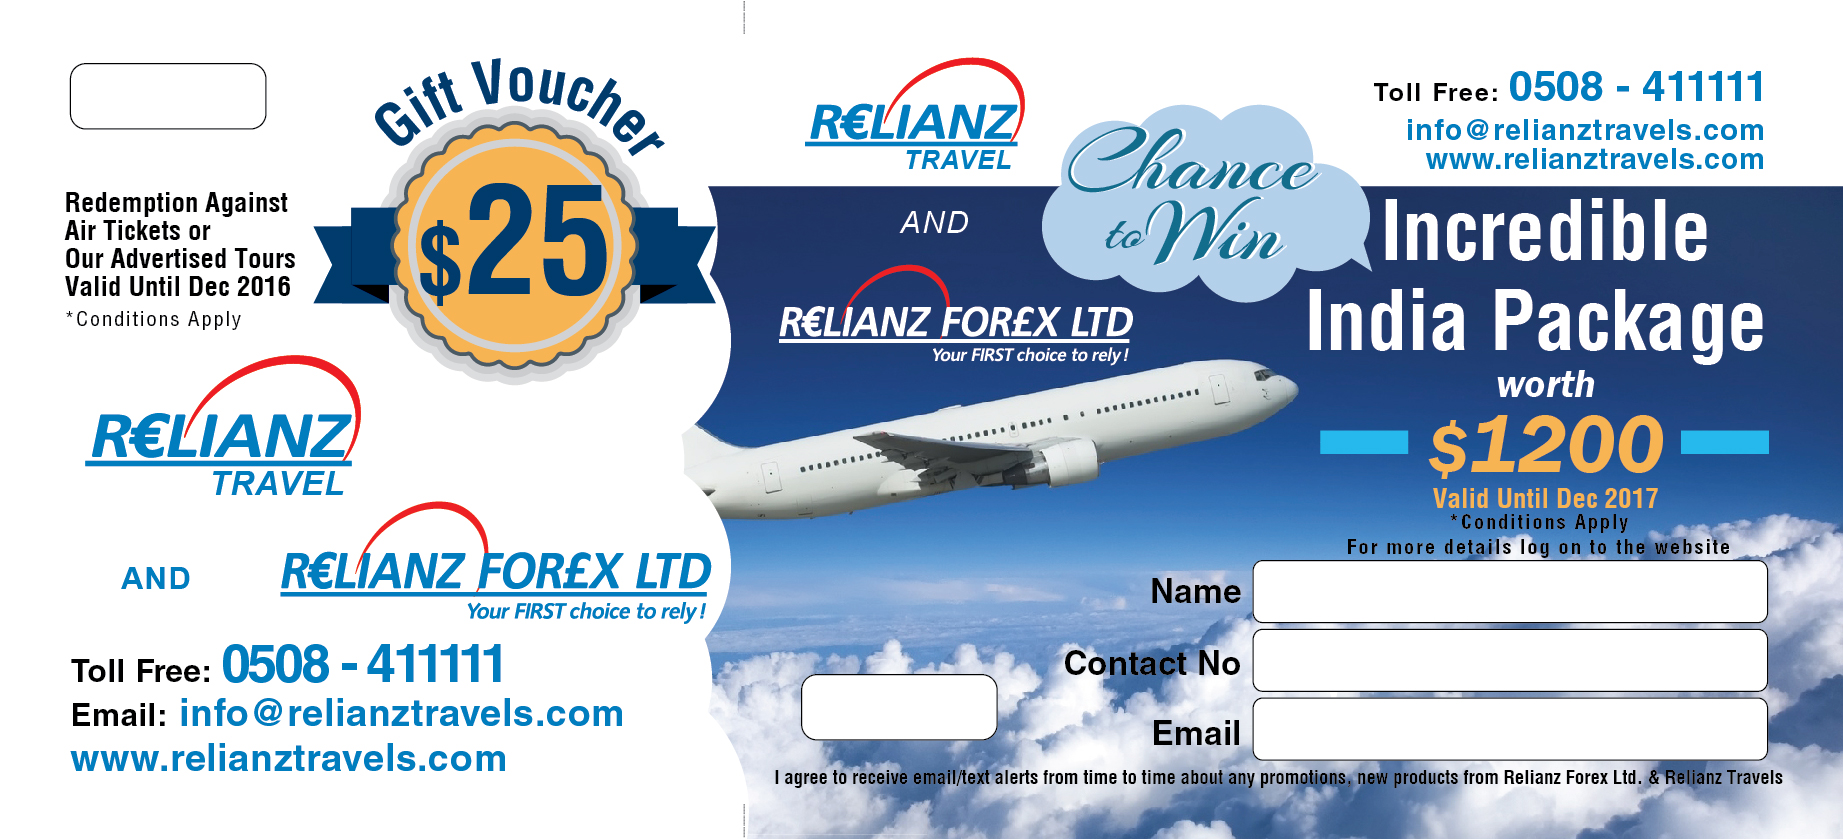 Travel gift certificate template choice image templates example gift certificate template plane ticket choice image certificate travel voucher gift certificate template image collections gift yadclub Choice Image